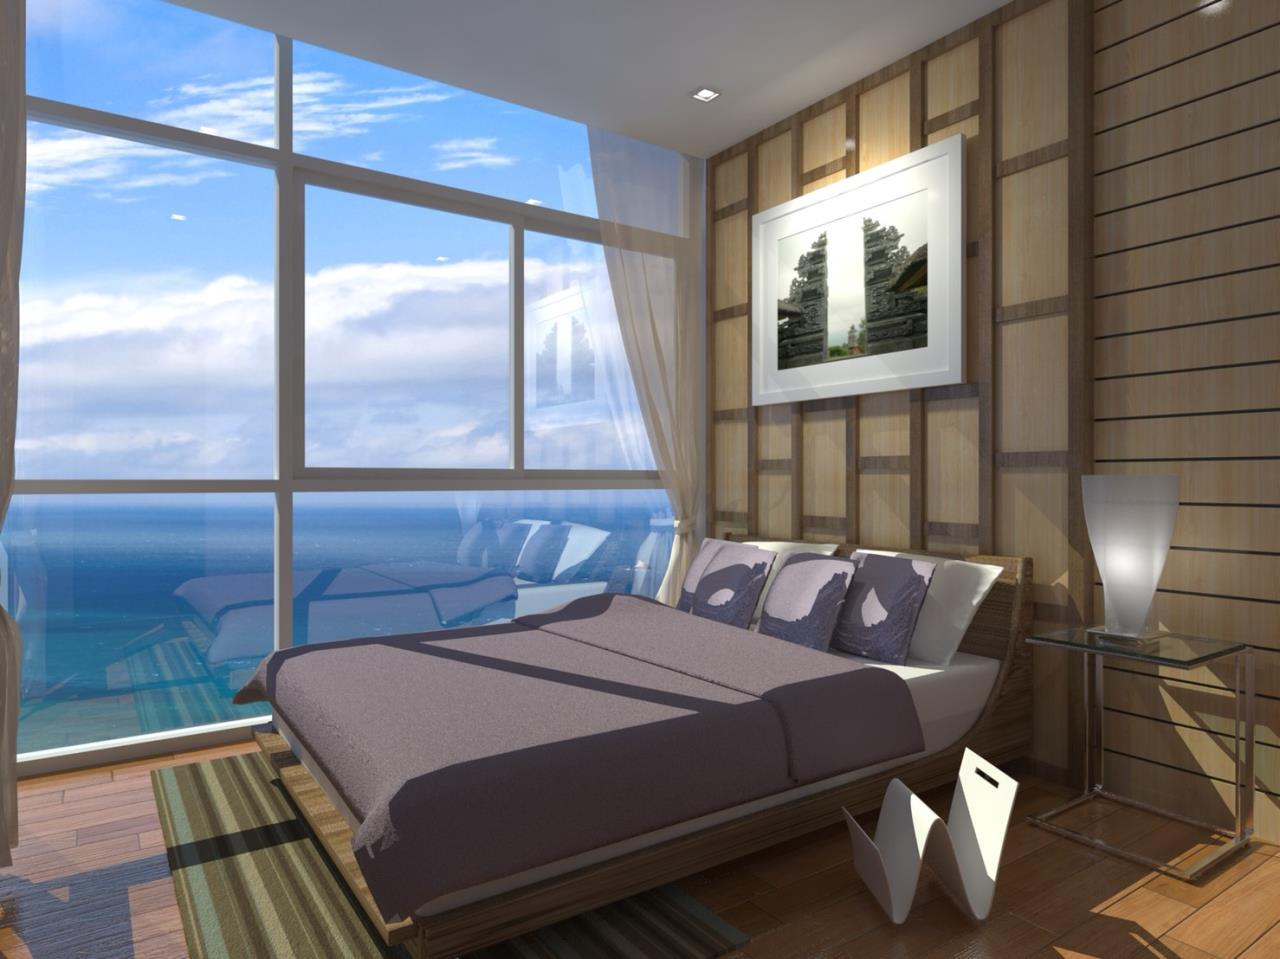 Signature Realty ( Thailand ) Co Ltd Agency's Furnished 2bedroom 65.75 sq.m condo with jacuzzi floor 2-11 at The Grand Jomtein Beach Pattaya 29